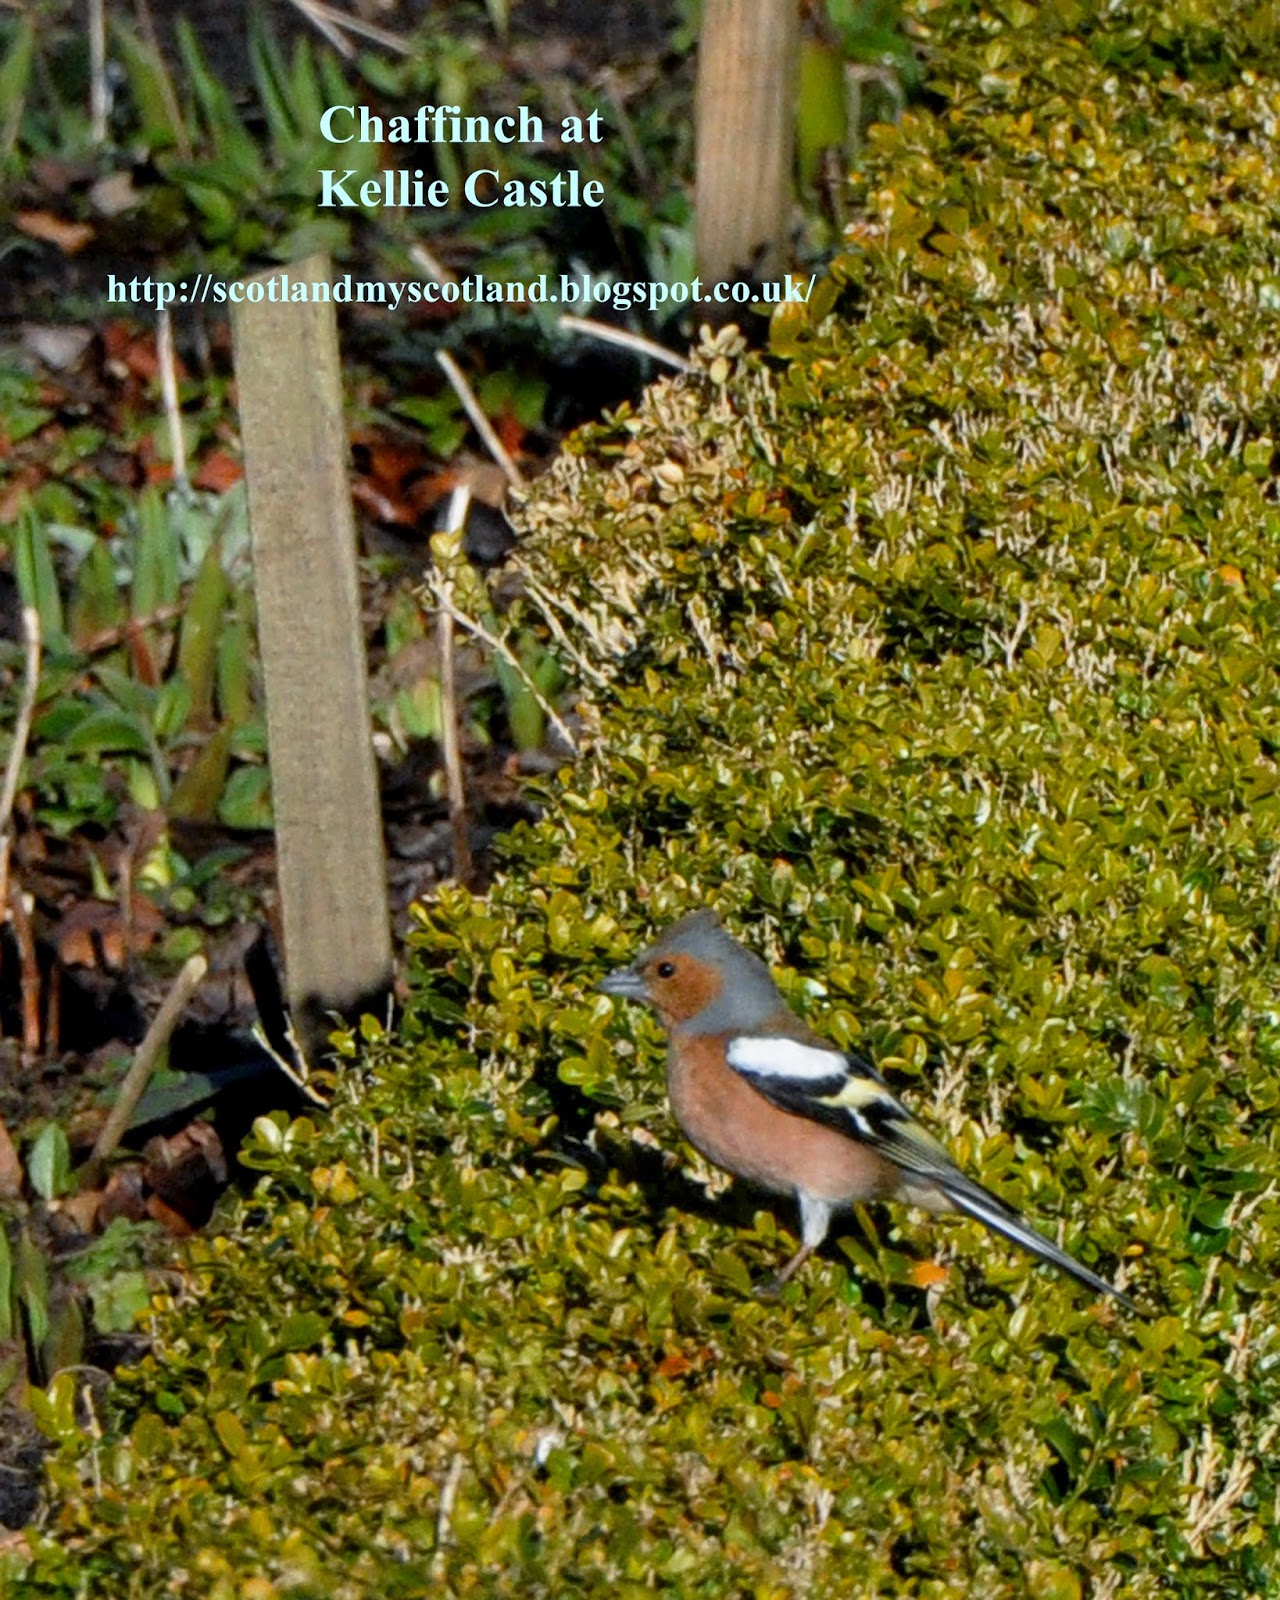 male chaffinch at Kellie Castle